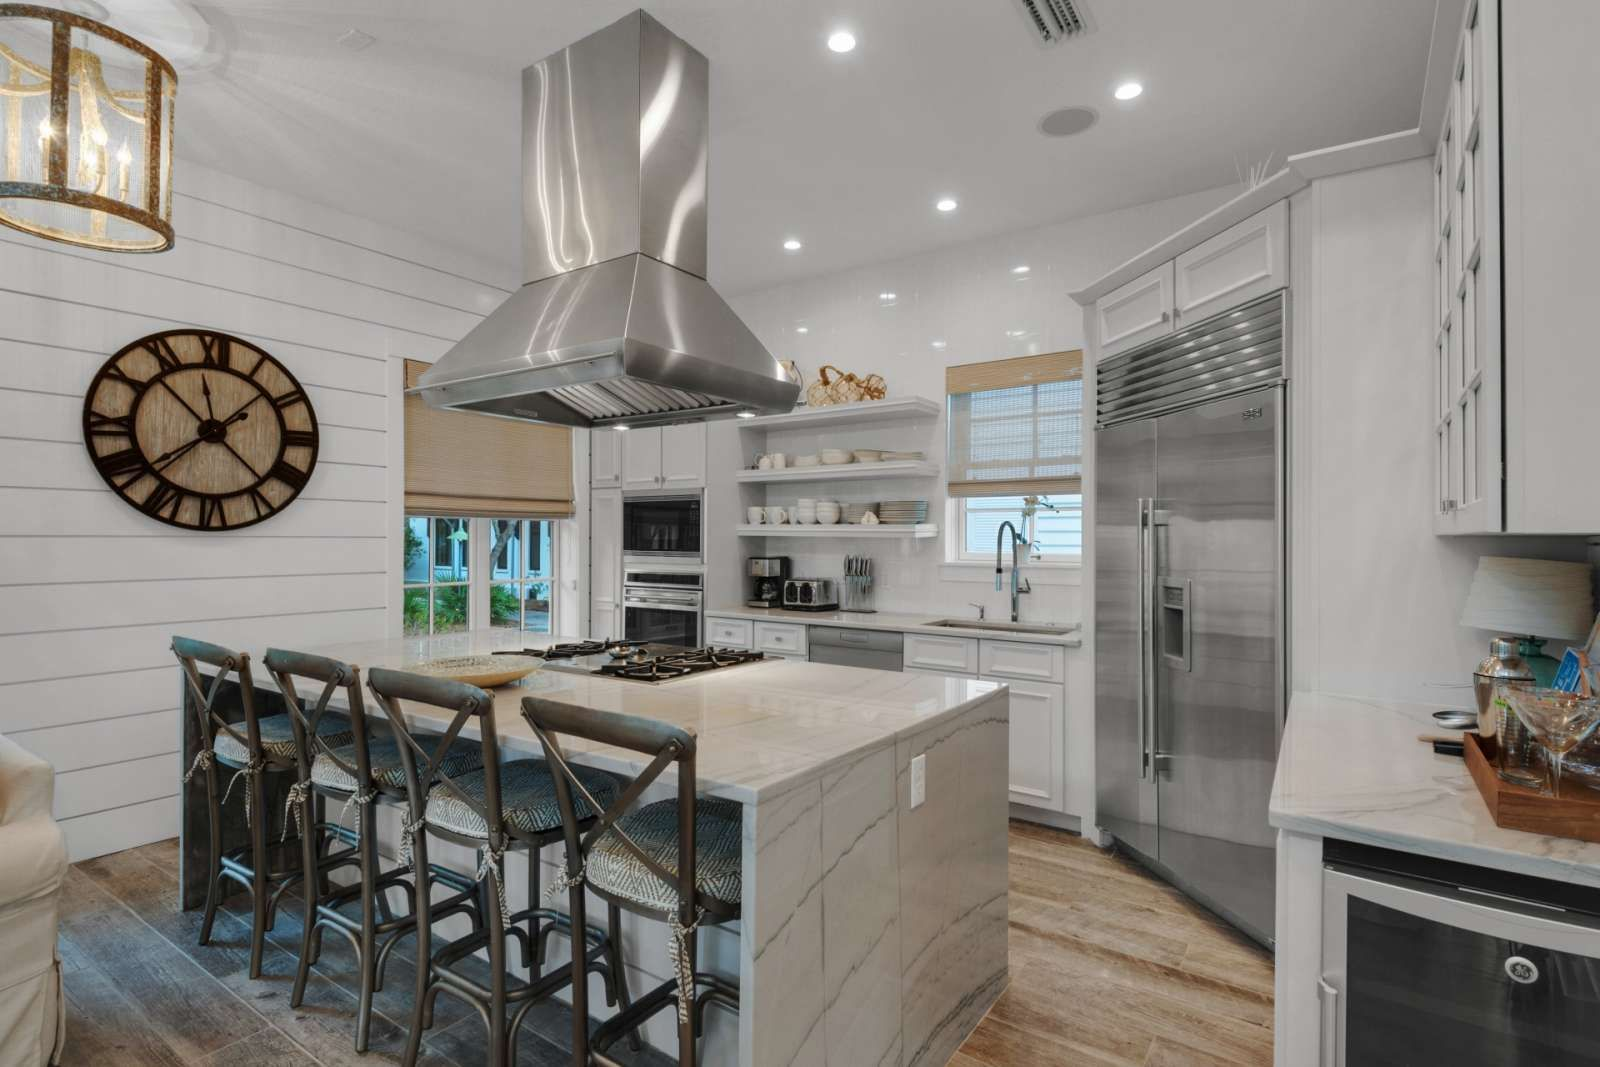 Panama City Beach Vacation Rental Newly Updated Luxurious Rosemary Beach Home 2 Master Suites Walk To Ros Small Kitchen Decor Kitchen Decor Small Kitchen